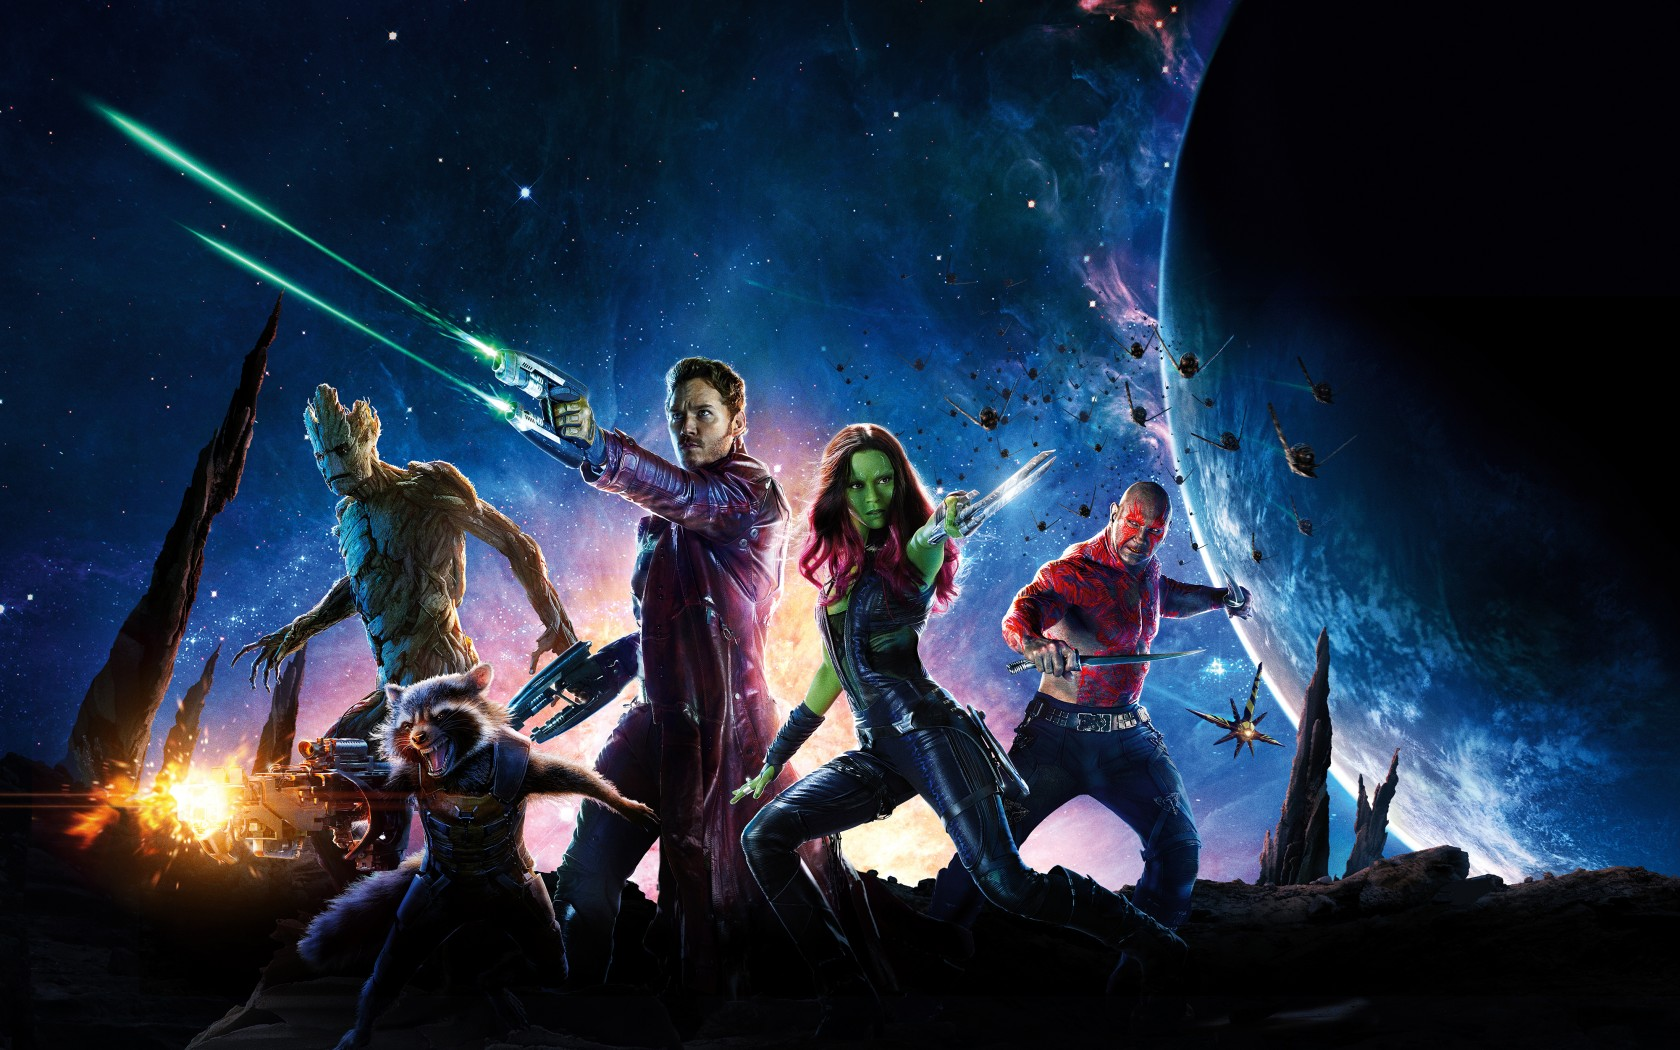 Free Download Wallpaper Full Guardians Of The Galaxy Guardians Of